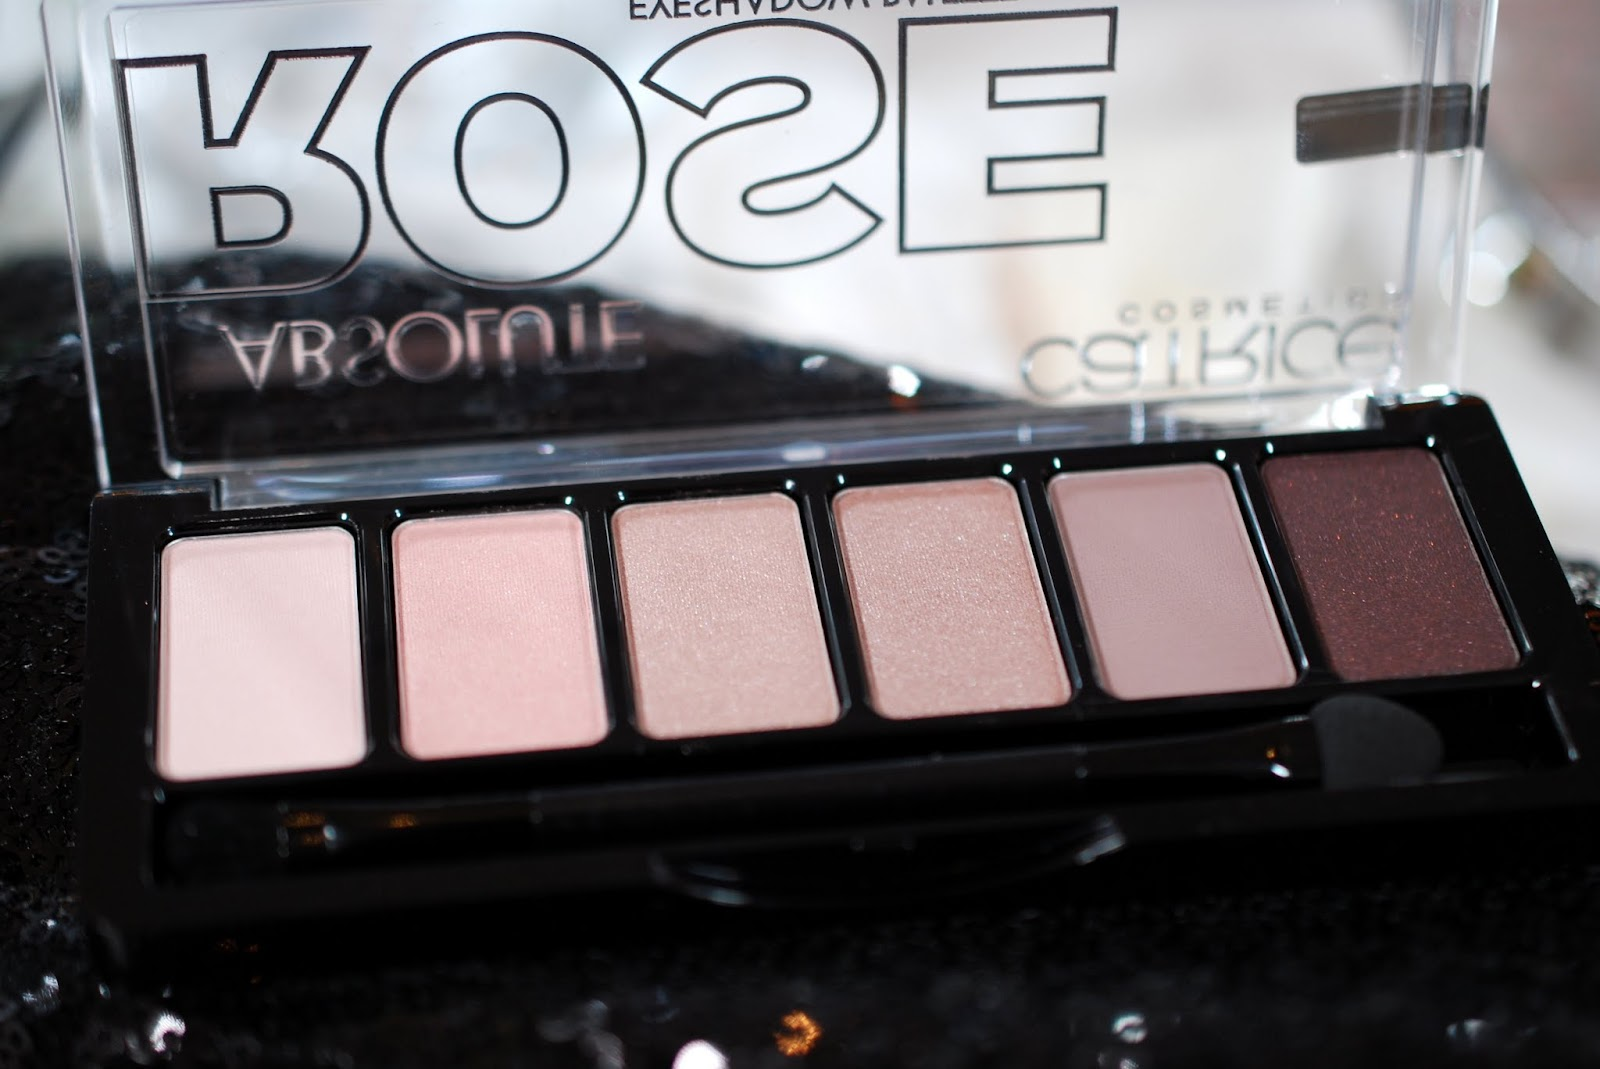 Review: Catrice Absolute Rose Eyeshadow Palette